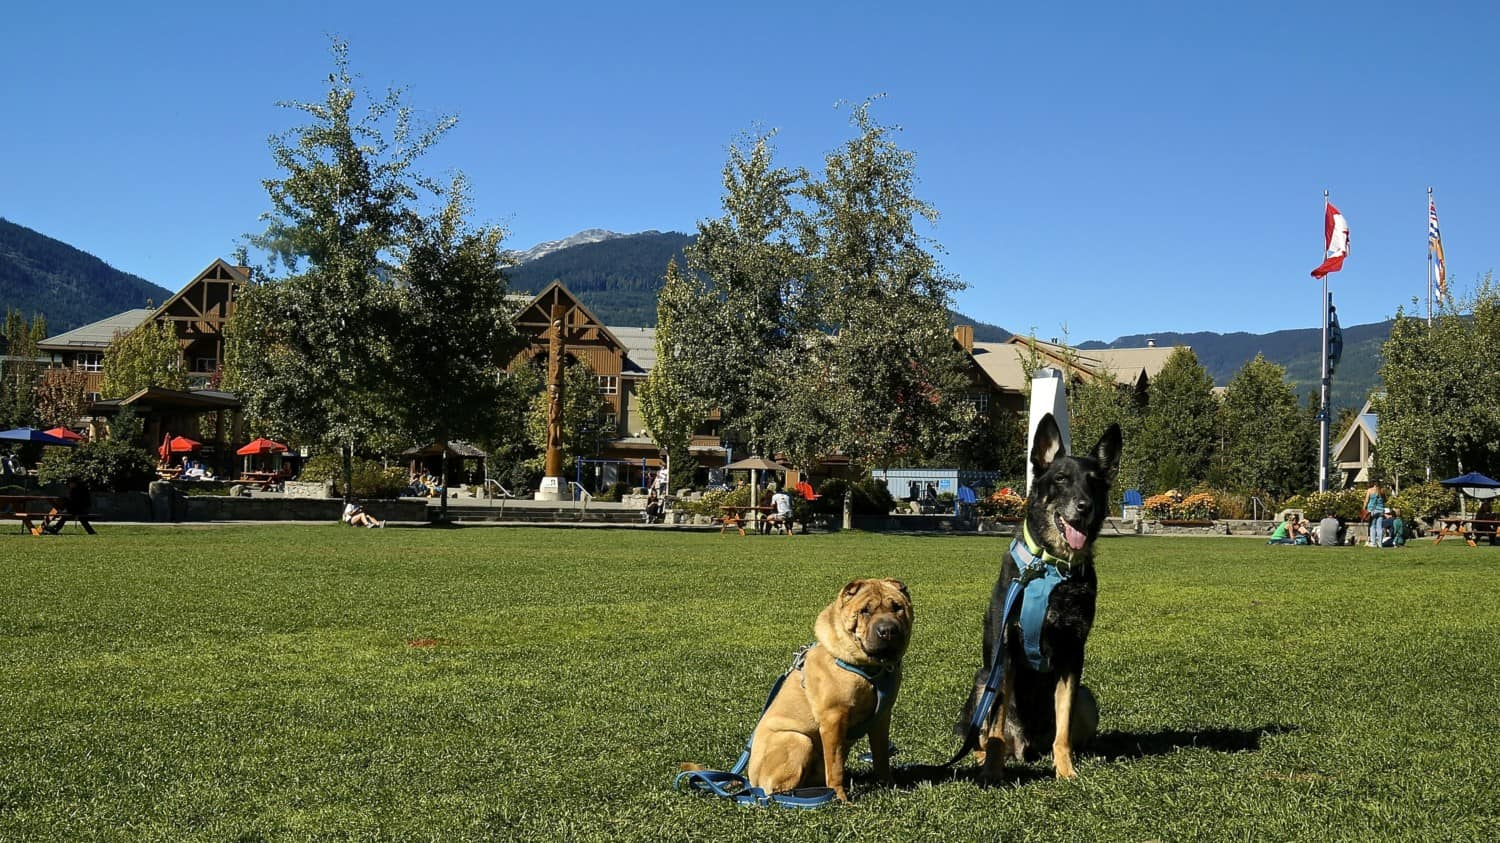 Dog Friendly Whistler, BC | GoPetFriendly.com